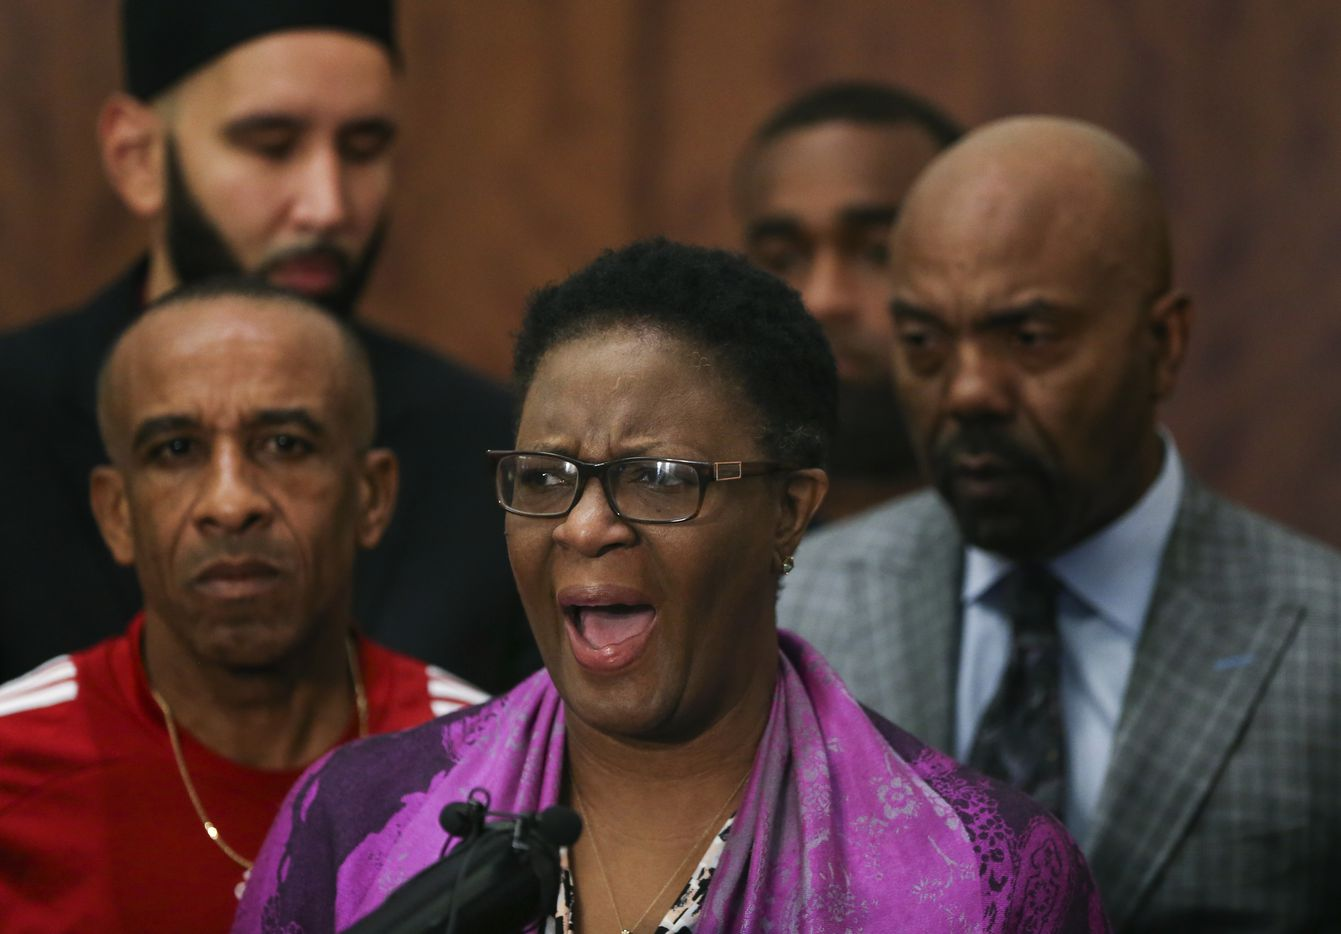 Allison Jean, mother of Botham Shem Jean, speaks during a press conference Friday, Sept. 14, 2018 in Dallas.